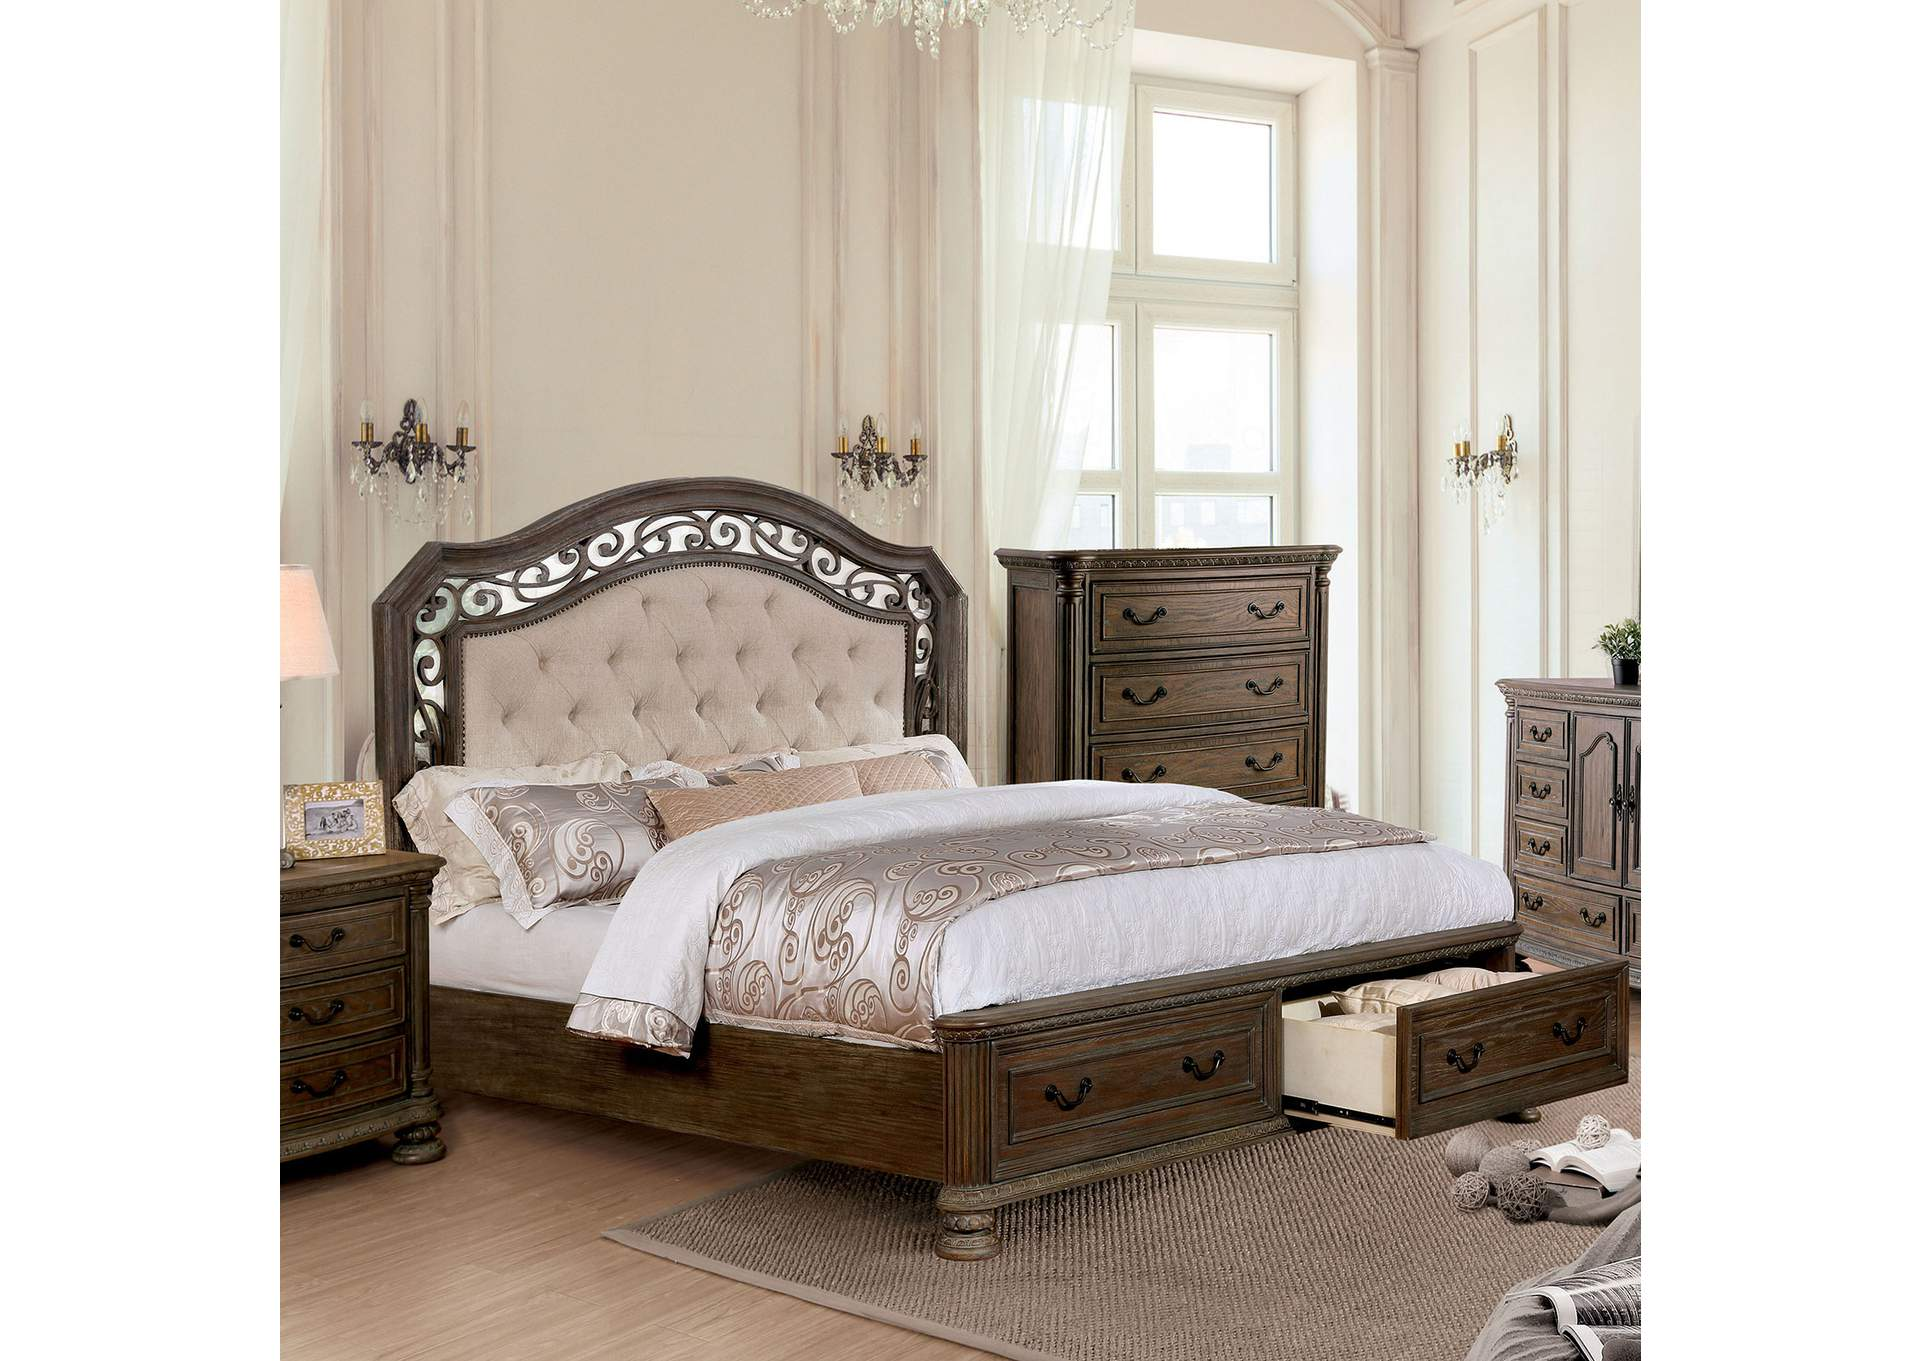 Persephone Rustic Natural California King Storage Bed,Furniture Of America